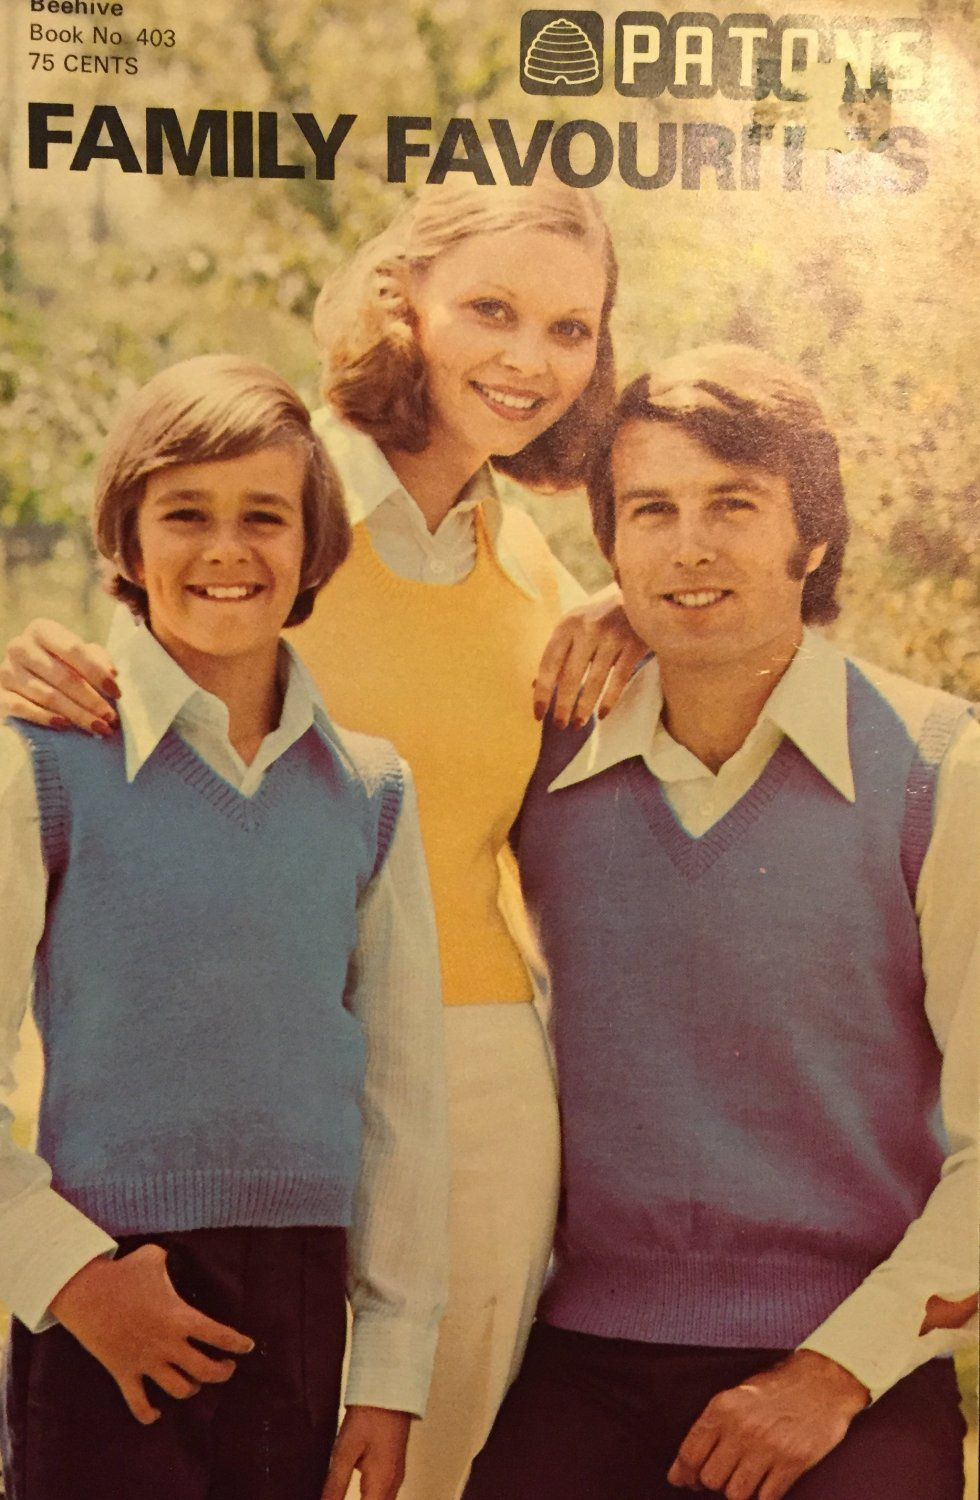 This is a Paton\'s knitting and crochet pattern for sweaters and ...